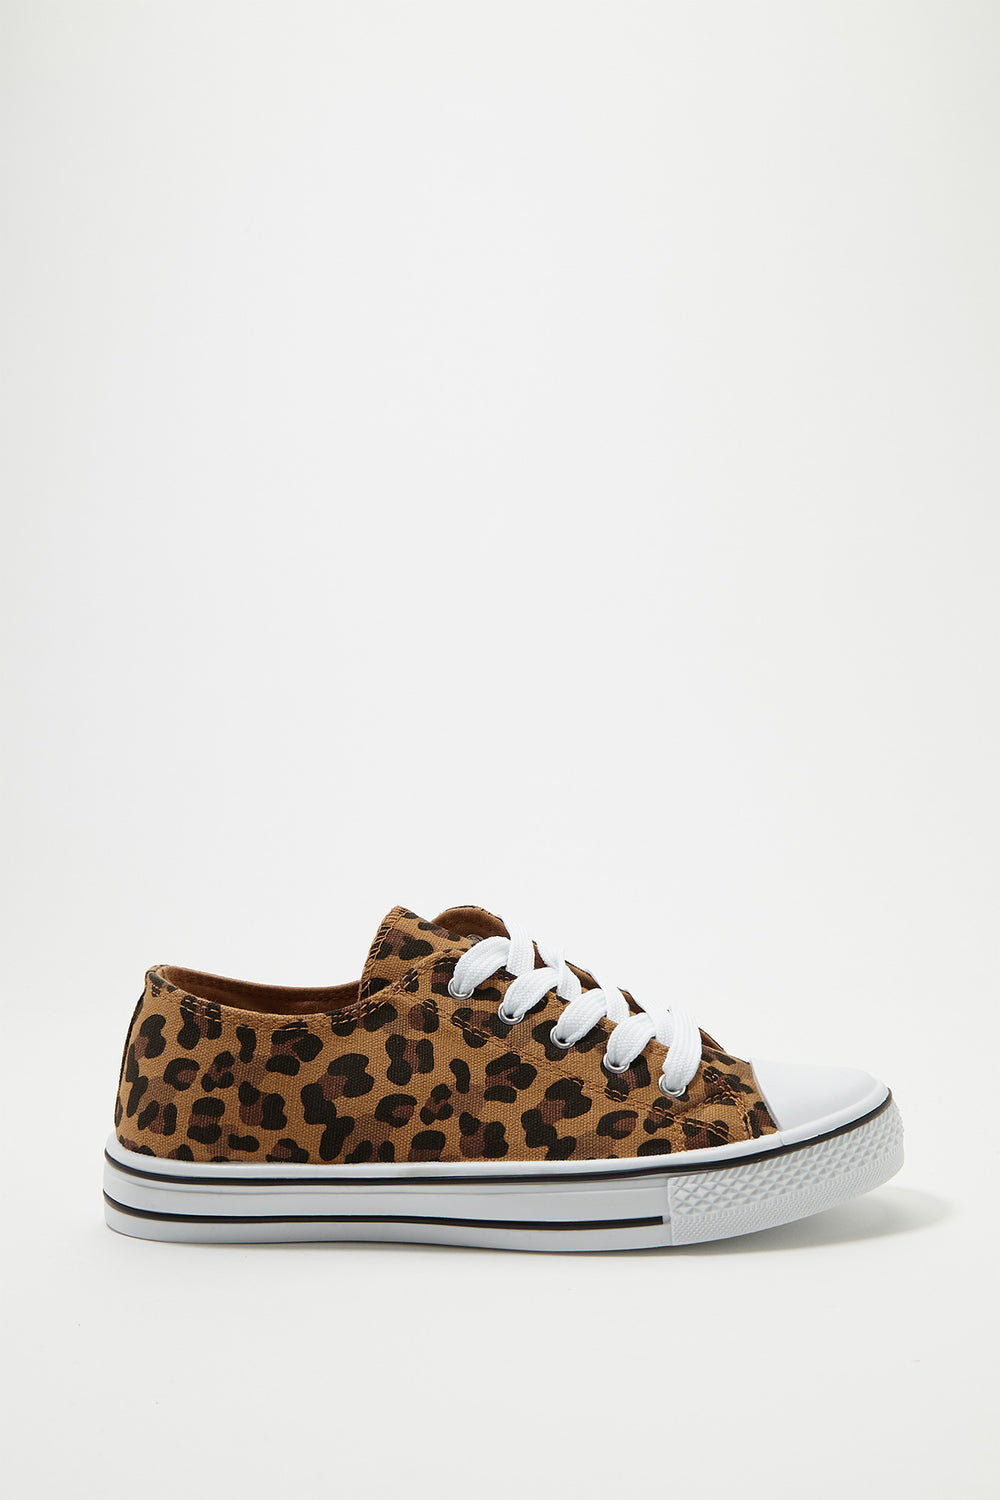 Printed Canvas Lace-Up Sneaker Leopard